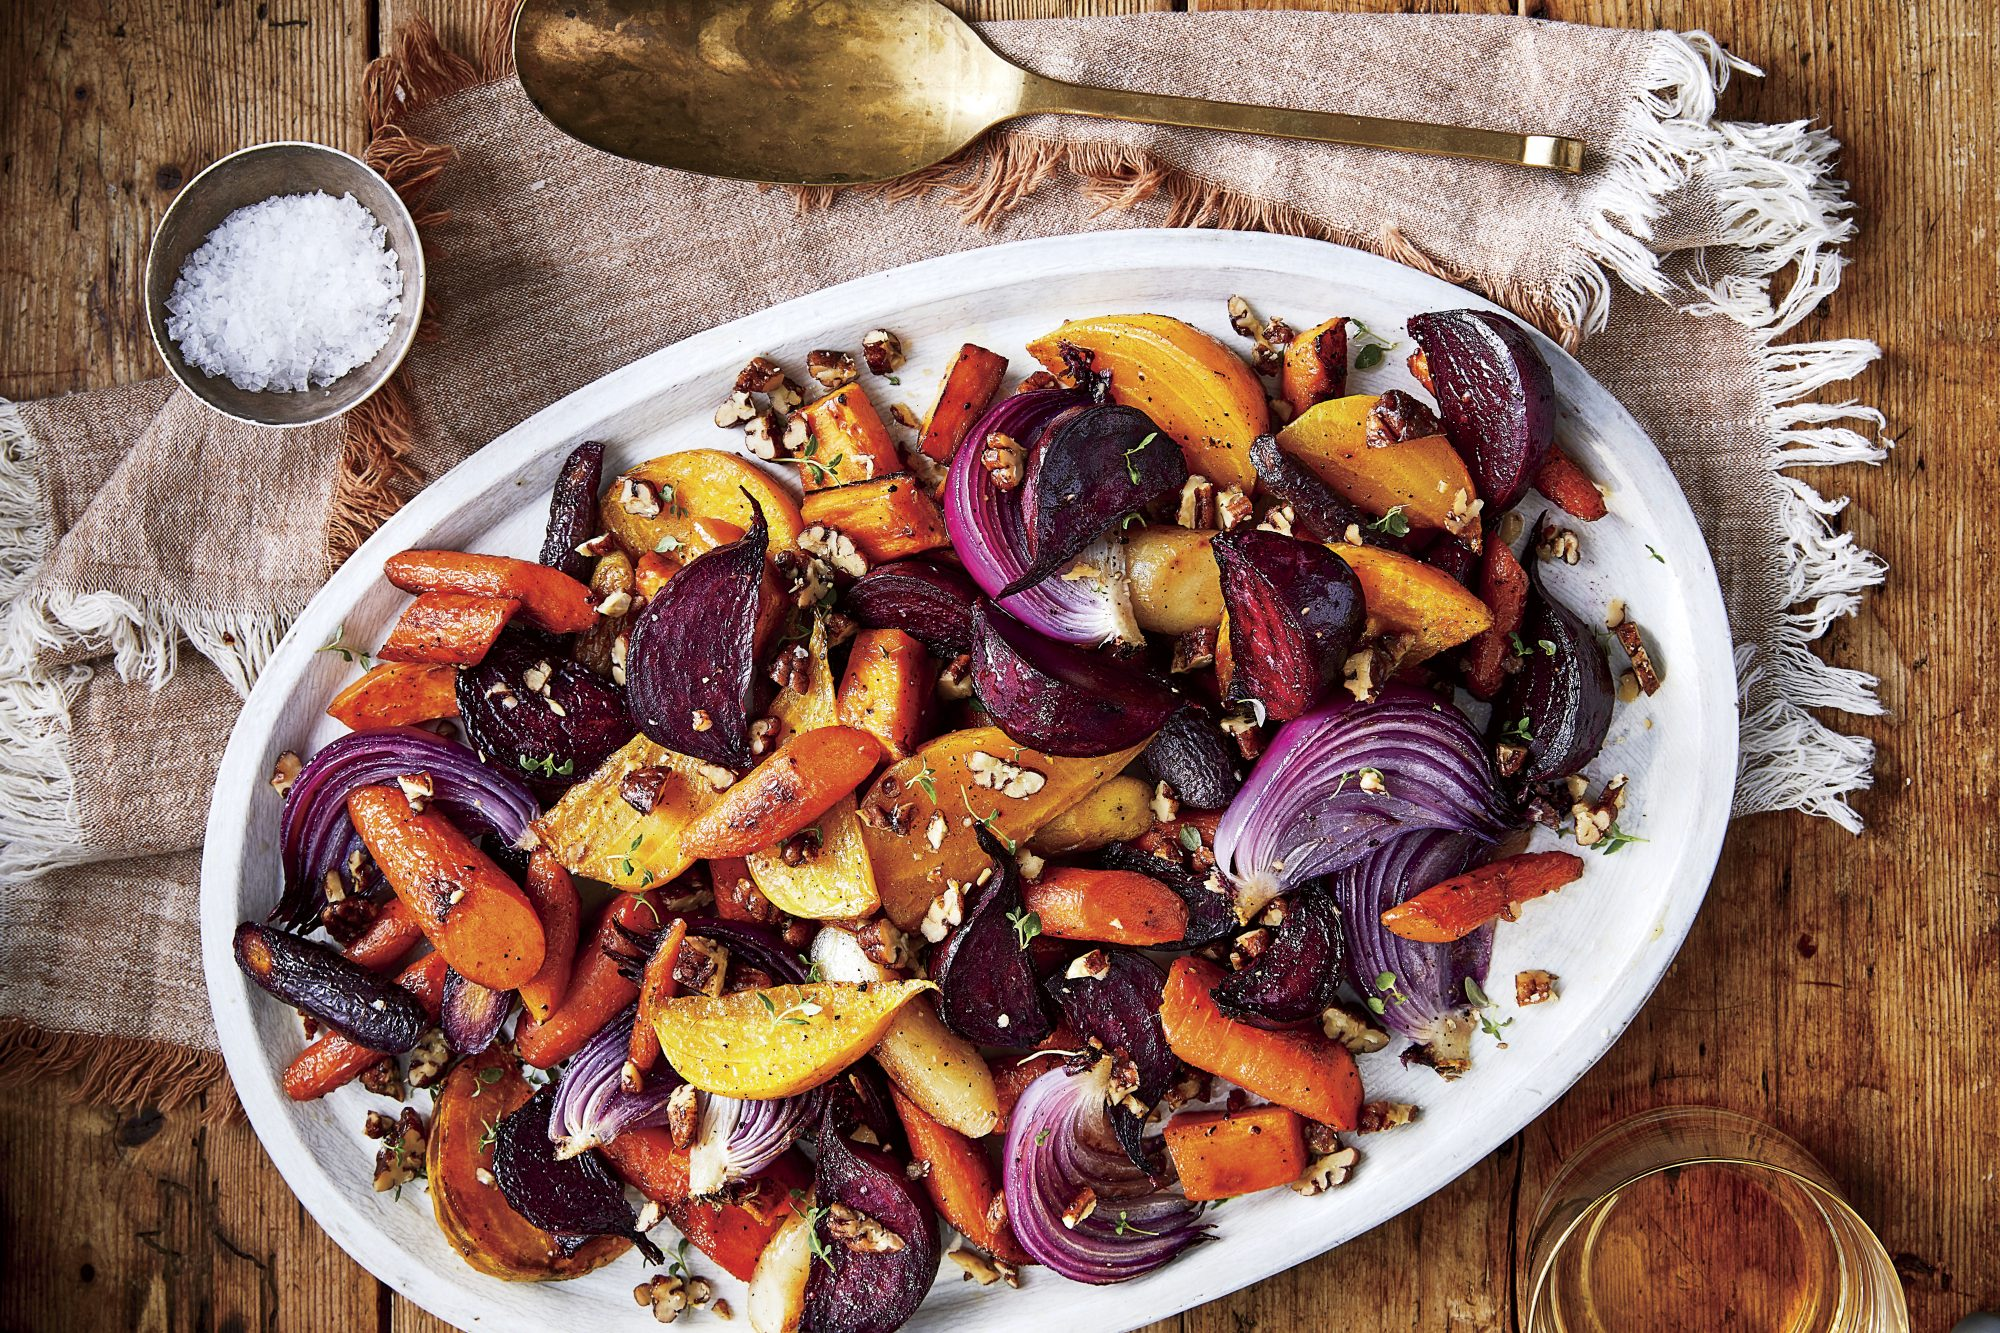 Oven-Roasted Root Vegetables with Spicy Pecan Topping